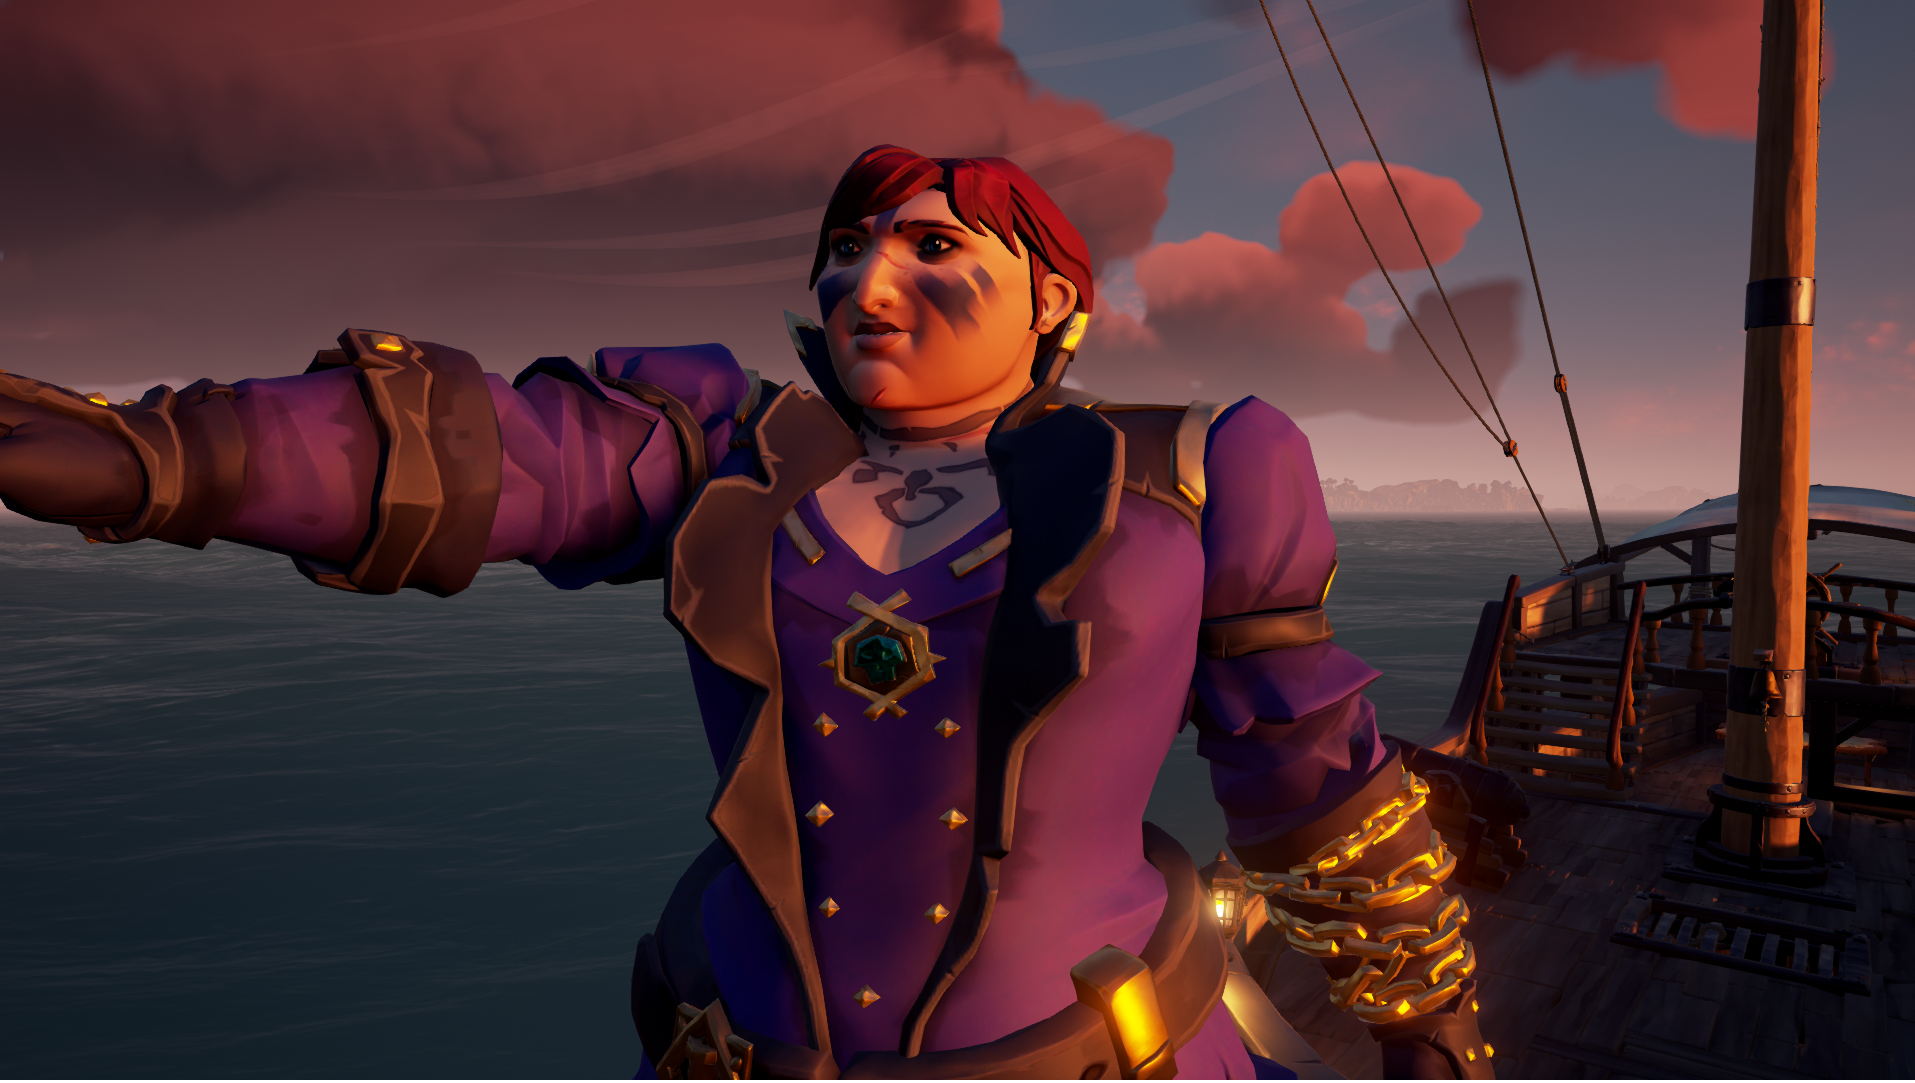 Sea of Thieves - a broad shouldered pirate in a purple dress and gold chains, with purple face paint, points to the horizon